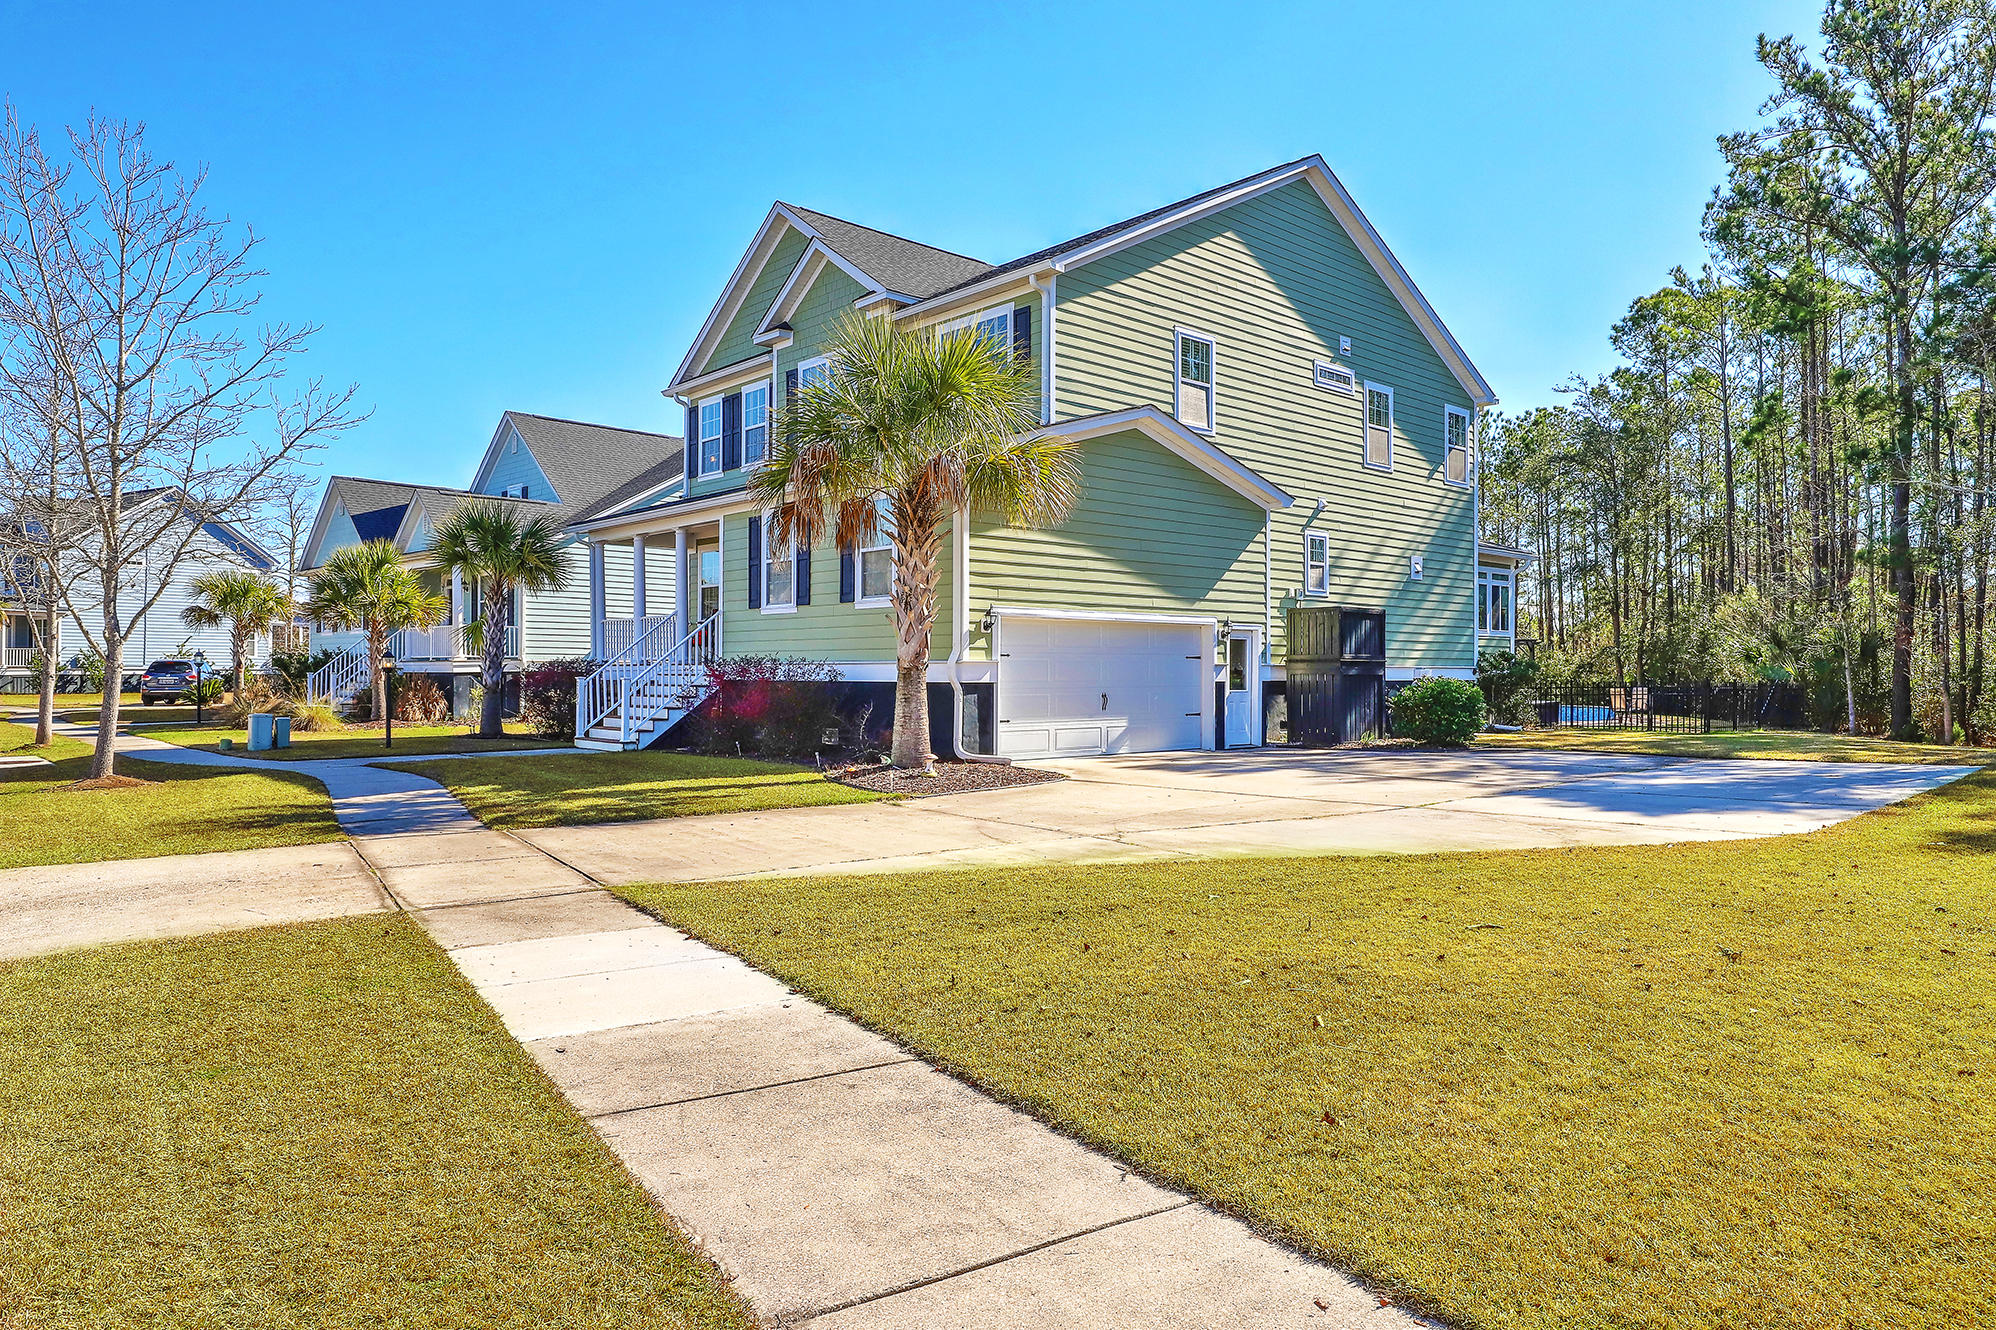 Rivertowne On The Wando Homes For Sale - 2105 Sandy Point, Mount Pleasant, SC - 2